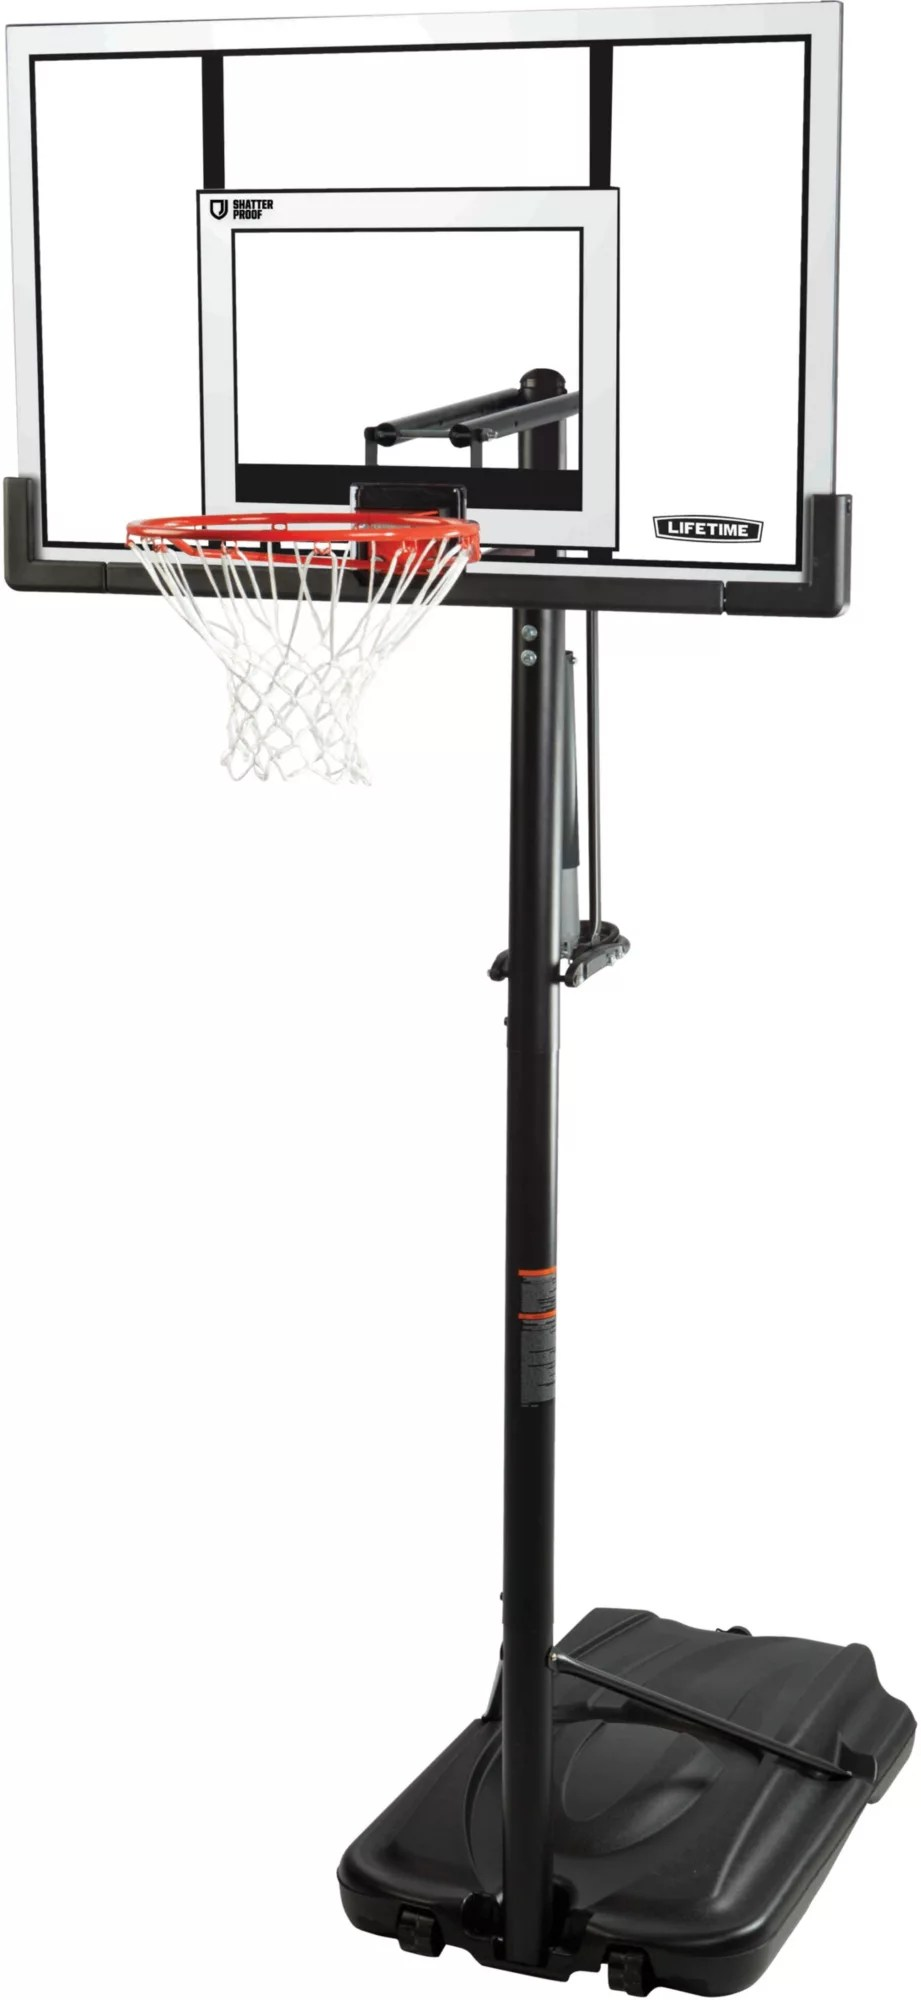 Lifetime Elite Series Basketball Hoop : lifetime, elite, series, basketball, Lifetime, Portable, Basketball, Curbside, DICK'S